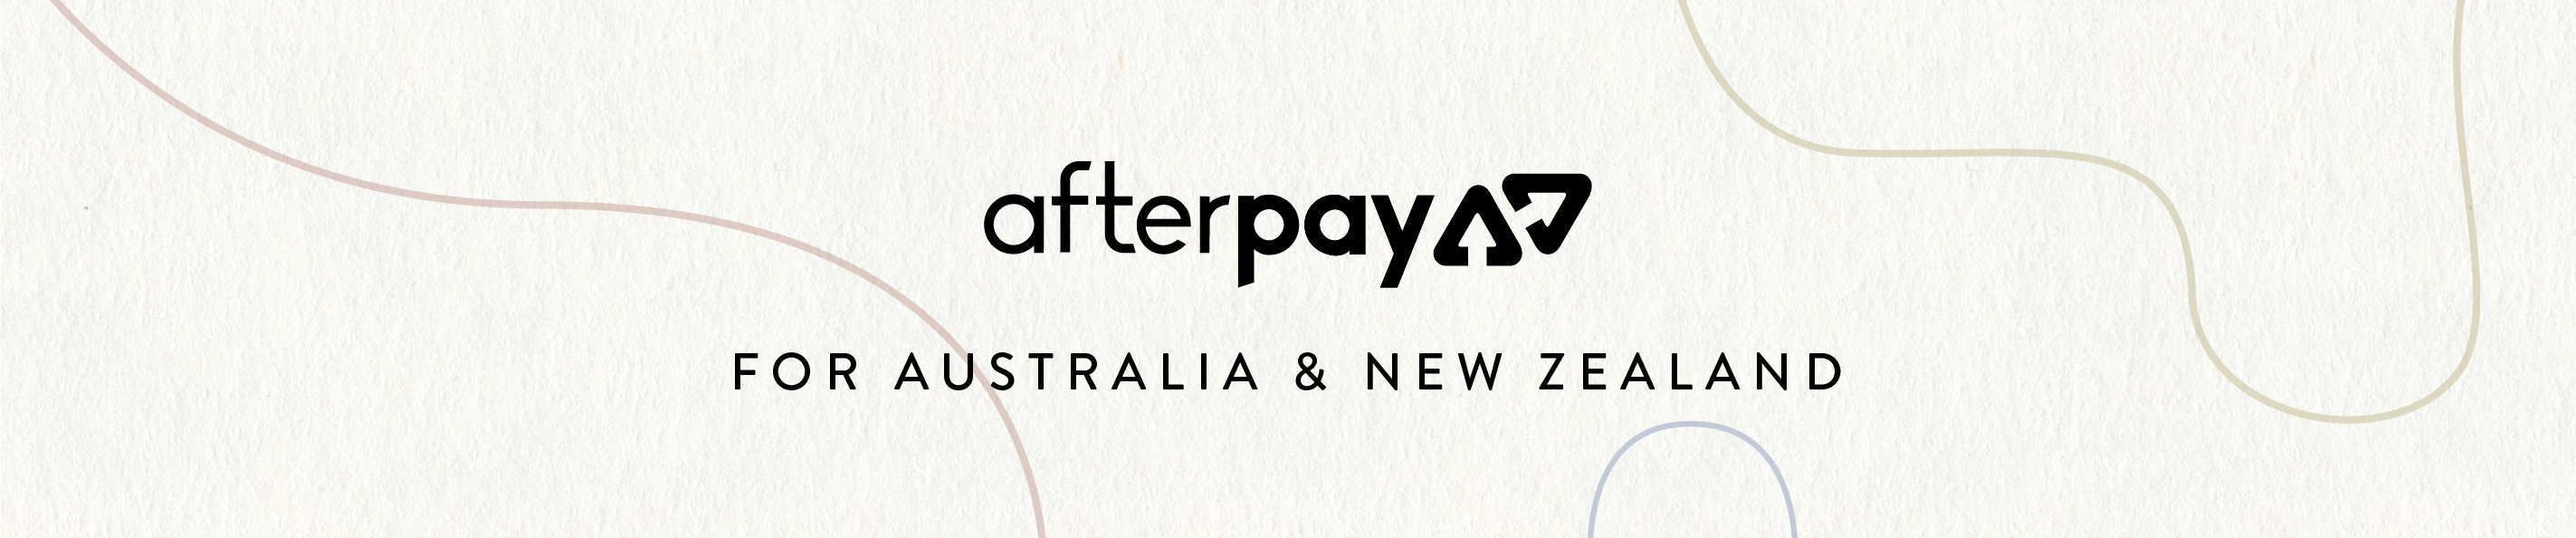 AFTERPAY - The Lane & Co